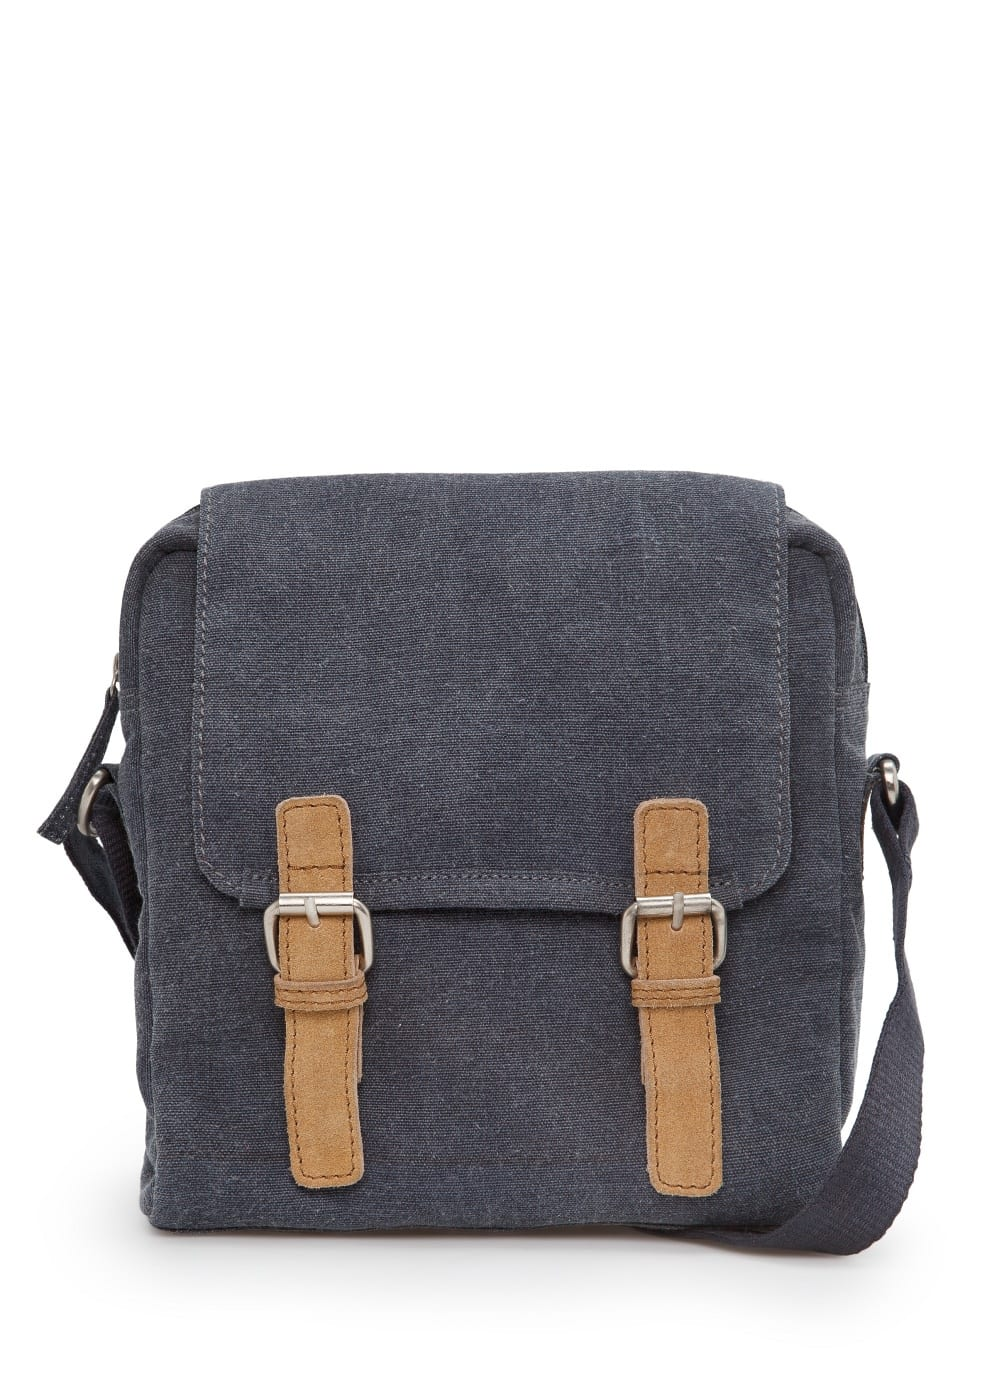 Canvas messenger bag